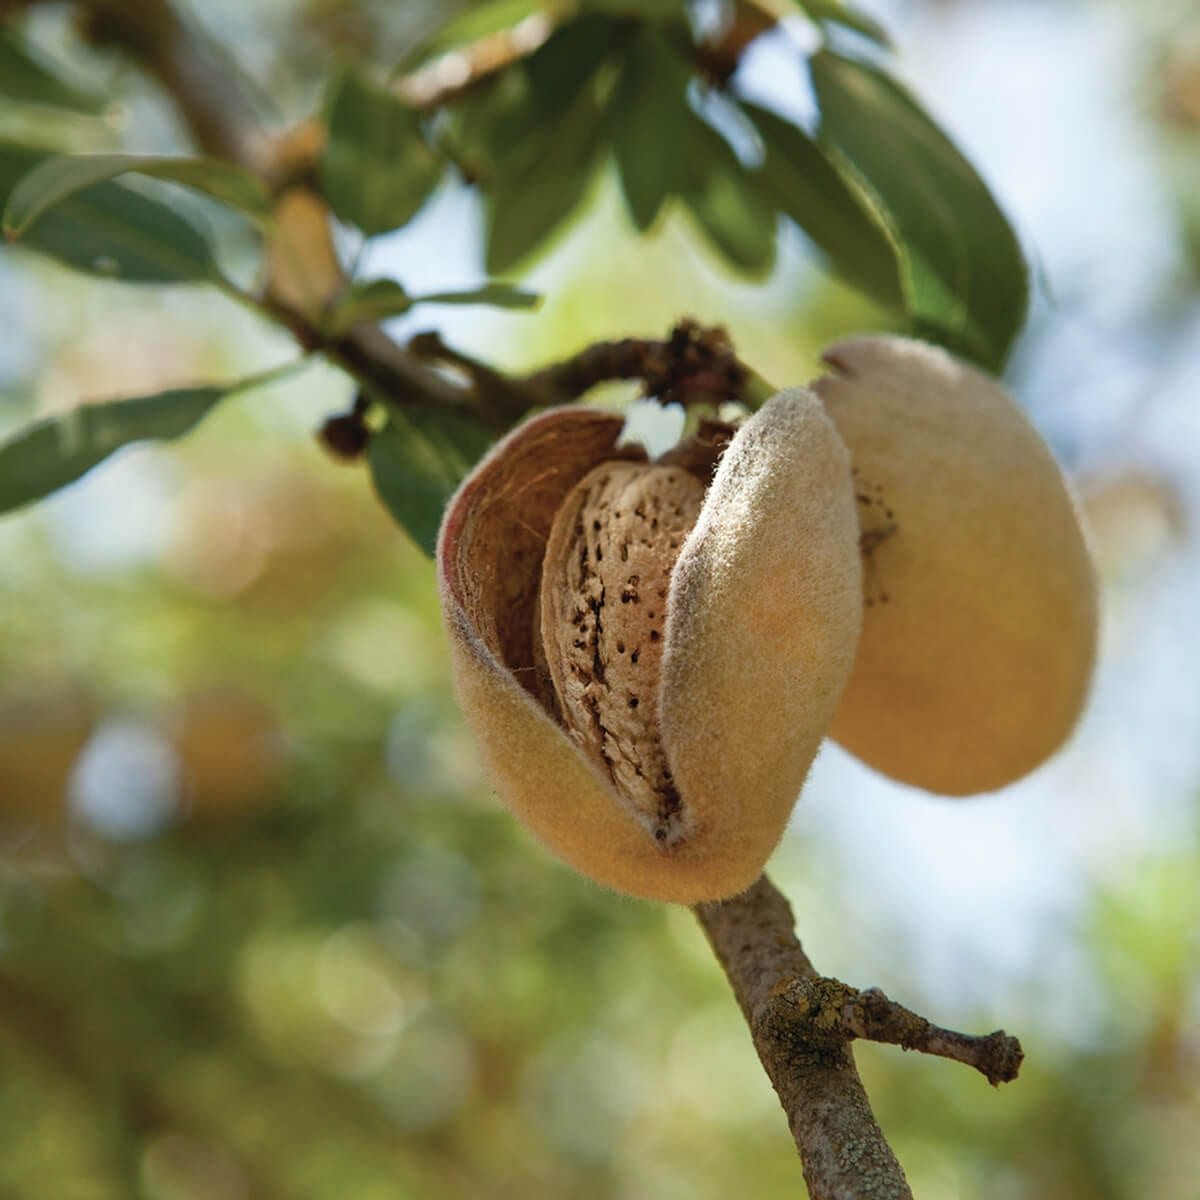 How Do Almonds Grow? The Planting and Harvesting Process, Explained